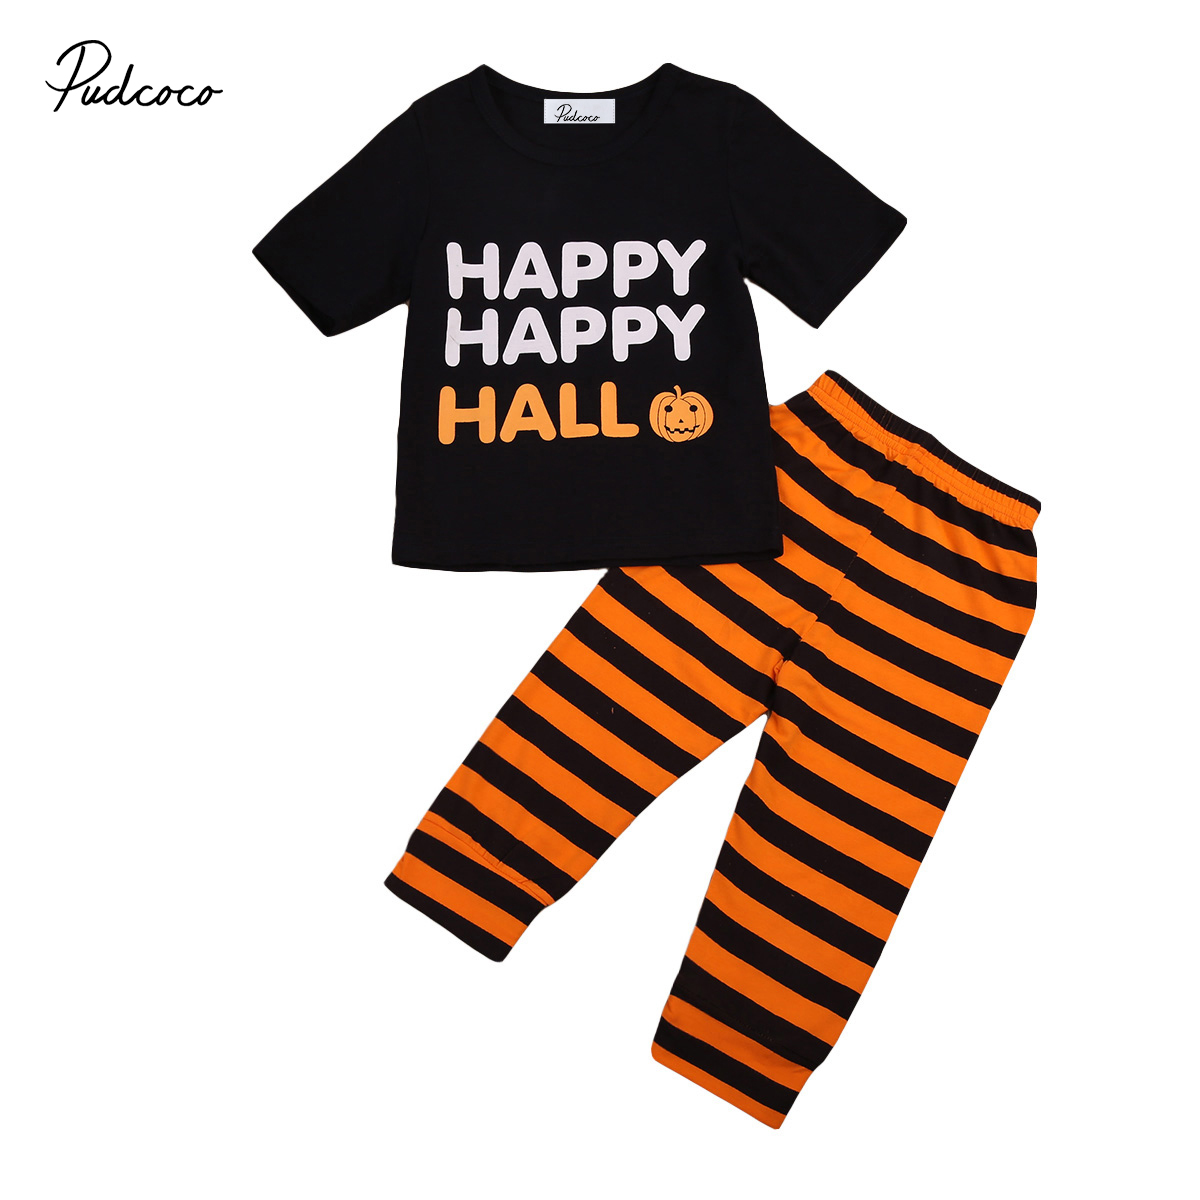 2PCS Kids Baby Toddler Boy Girl Clothes Halloween Set Happy T-shirt Top+Striped Pants Leggings Outfit Clothes 0-24M